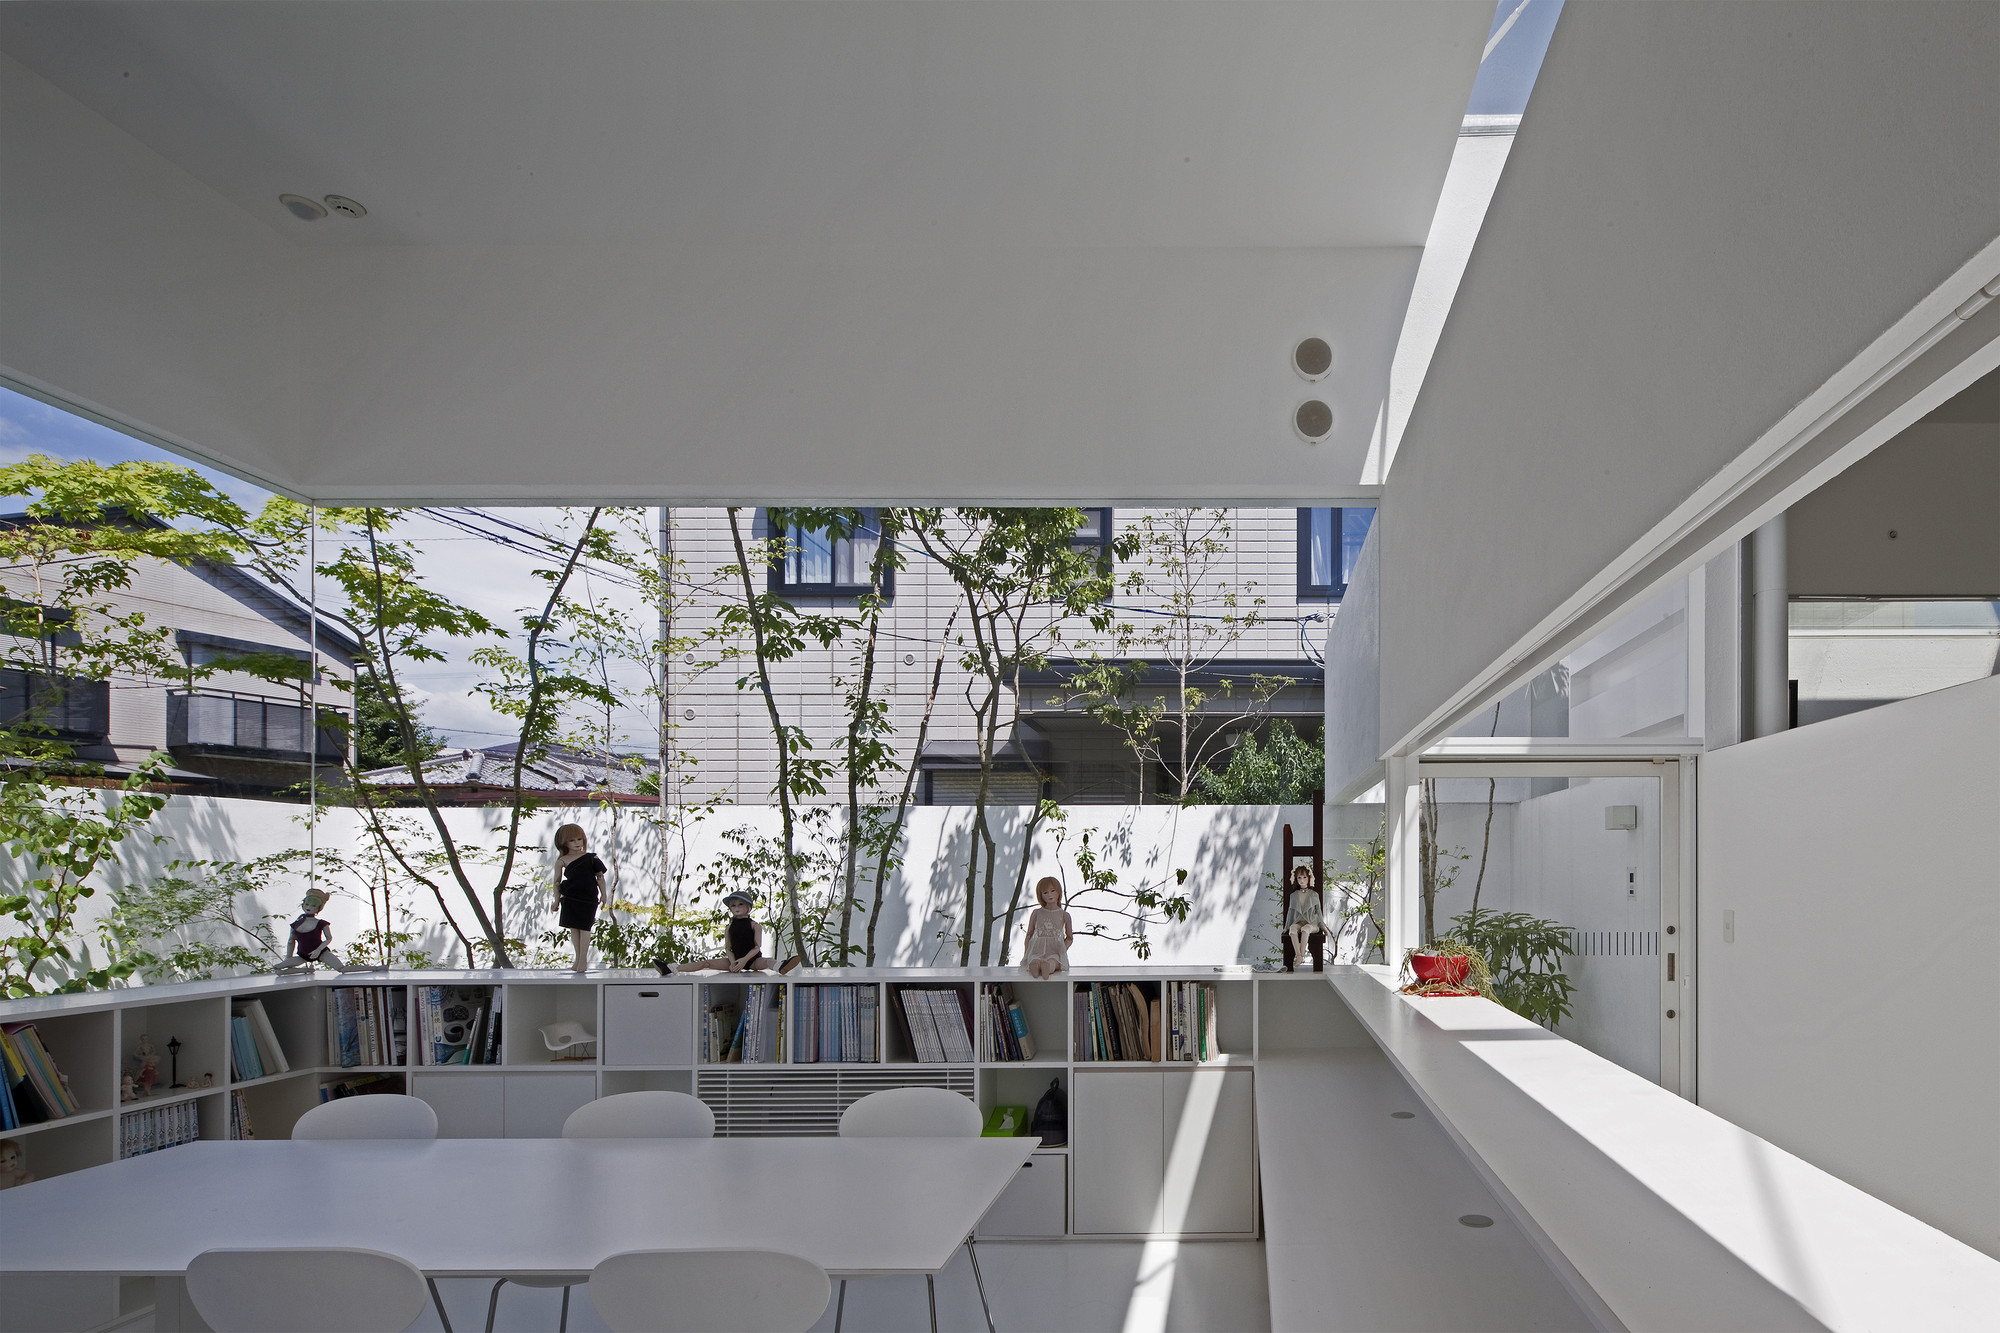 Atelier bisque doll uid architects archdaily for De atelier architects